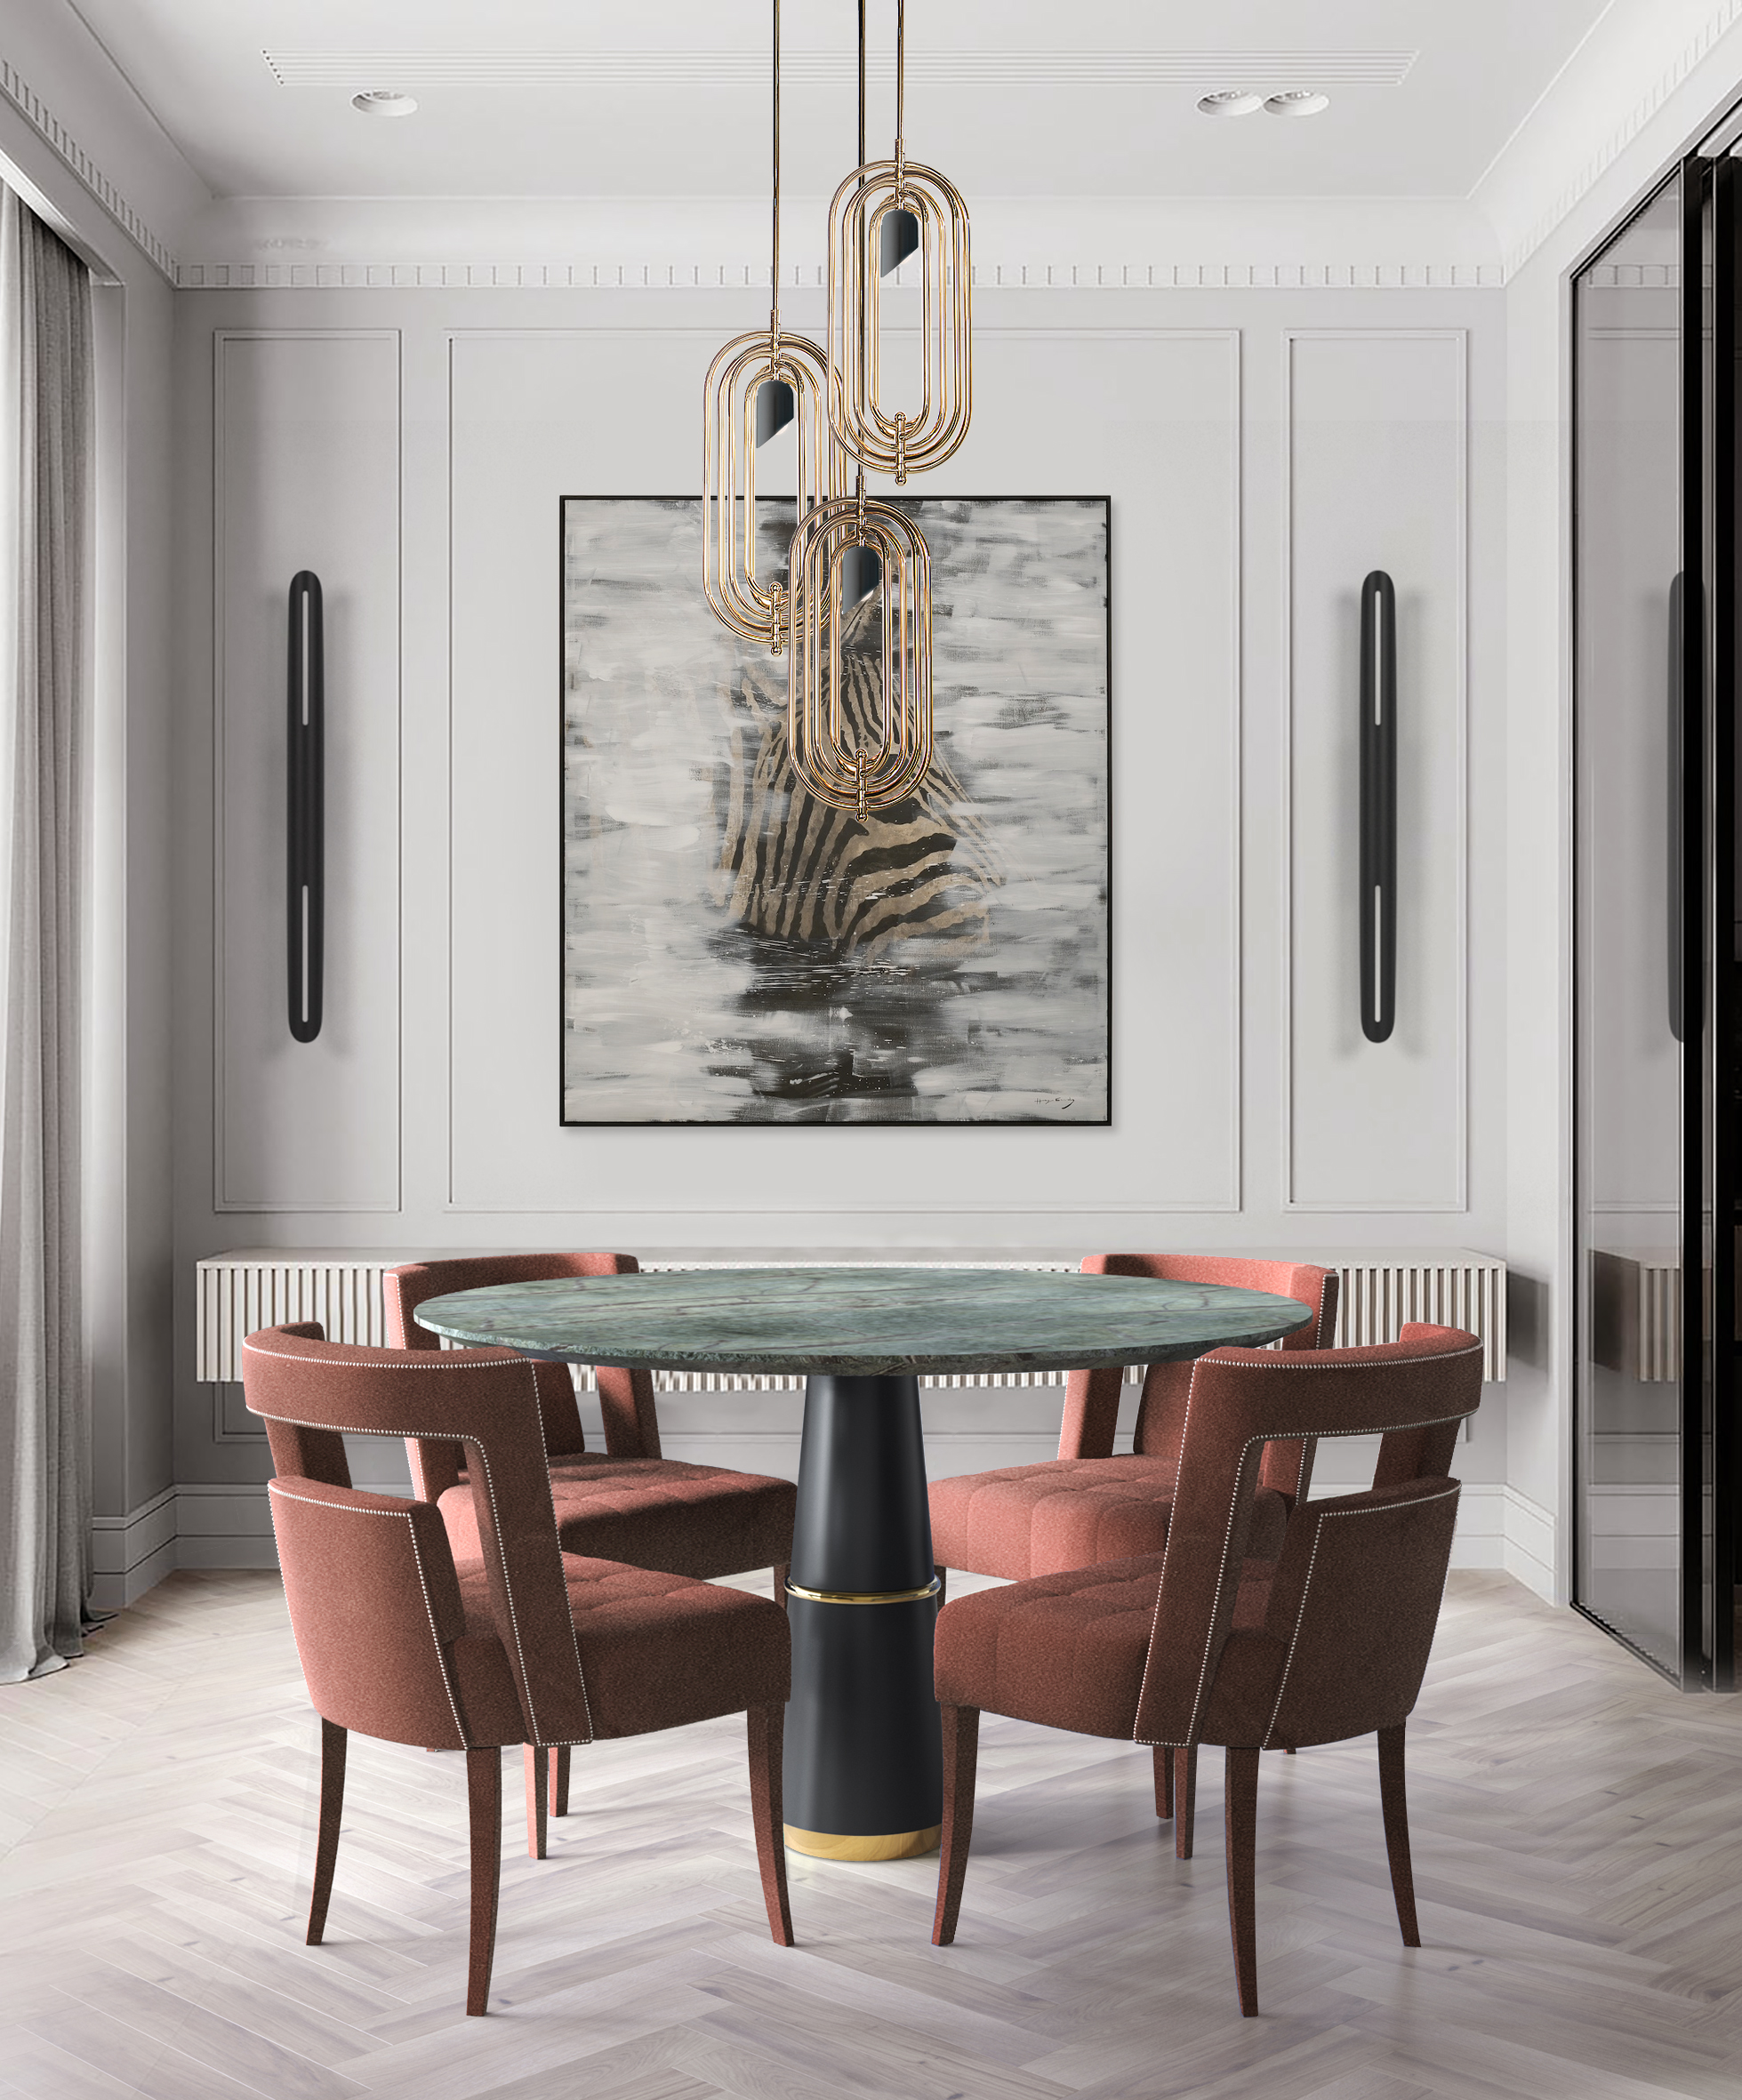 Let These Suspension Lamps be the Spotlight of Your Dining Table! suspension lamps Let These Suspension Lamps be the Spotlight of Your Dining Table! 3 7